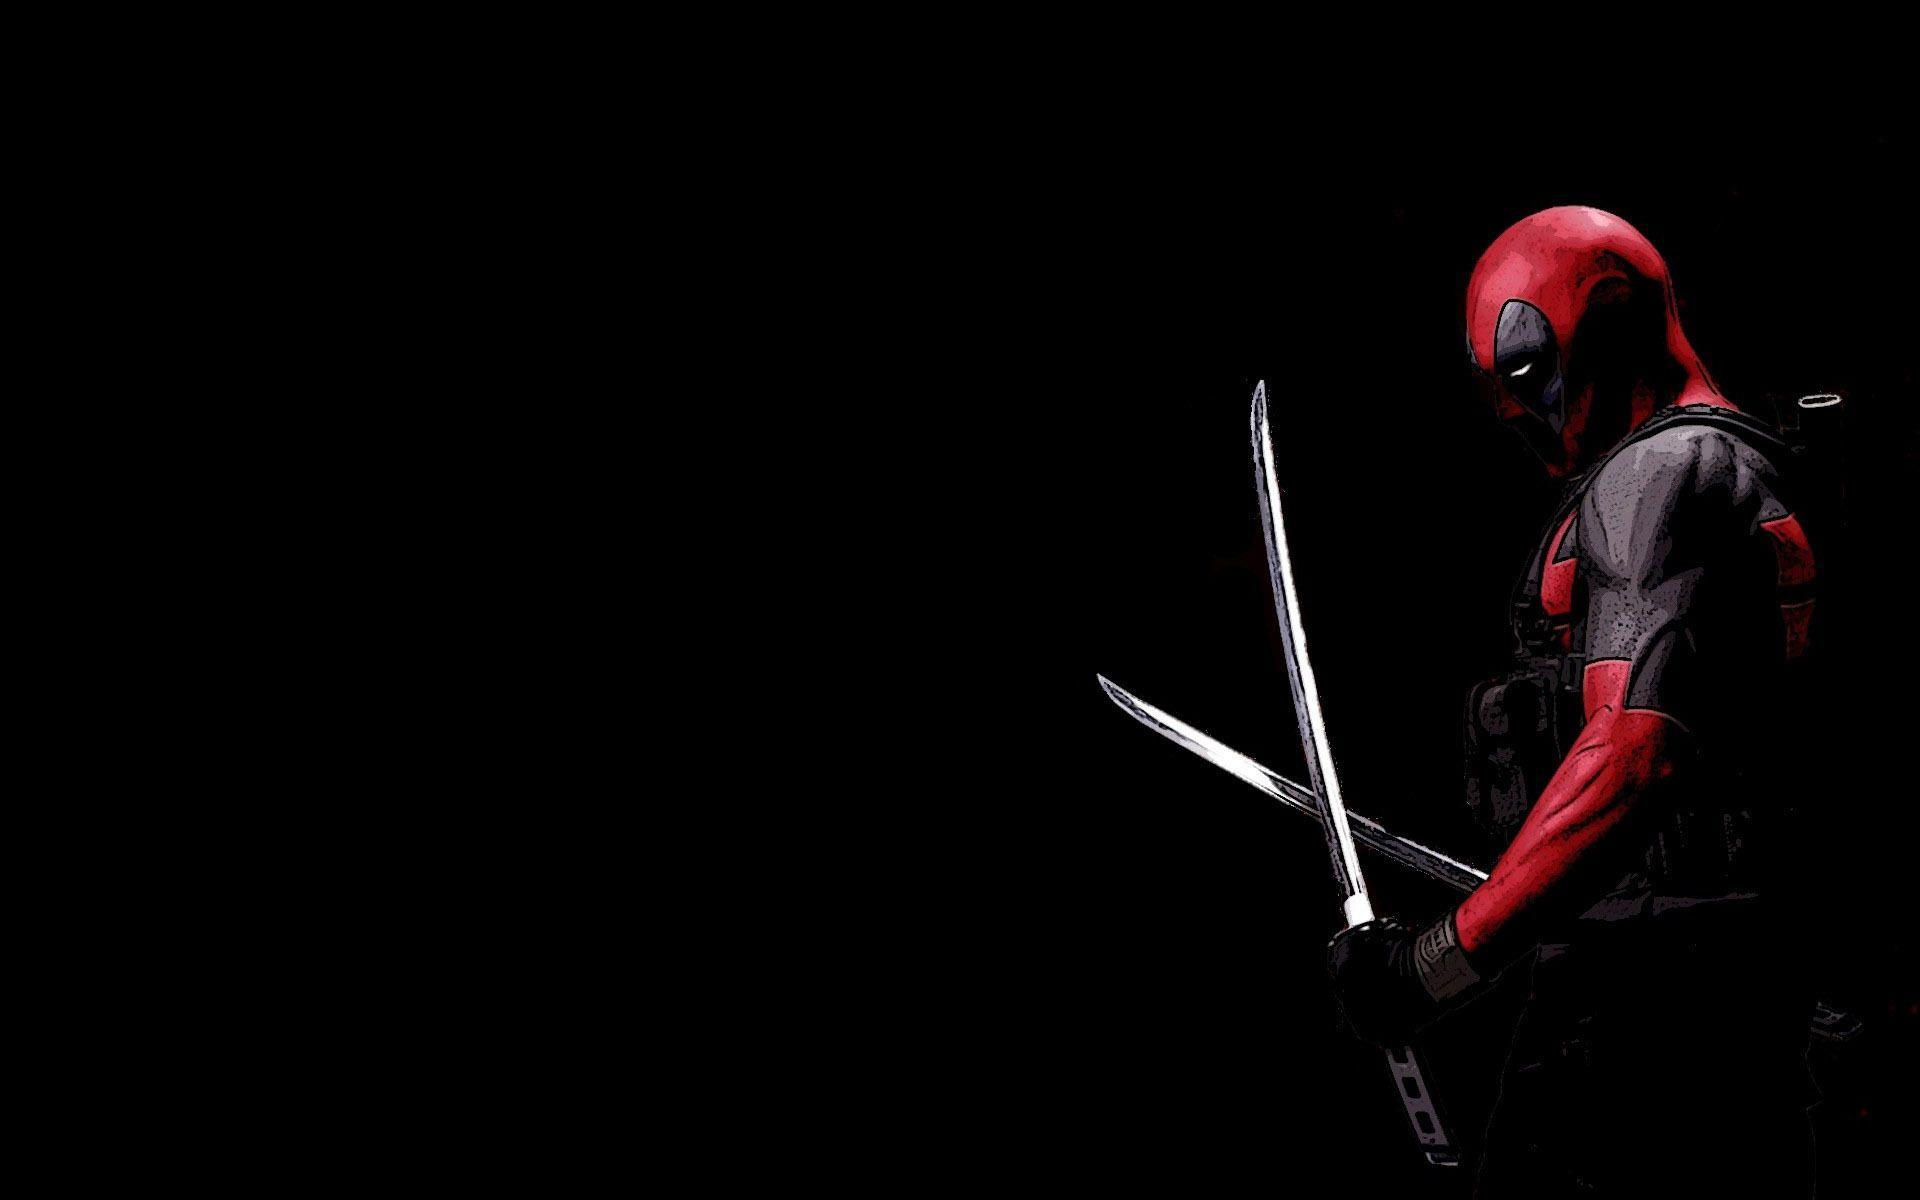 Deadpool Wallpapers 1920x1200